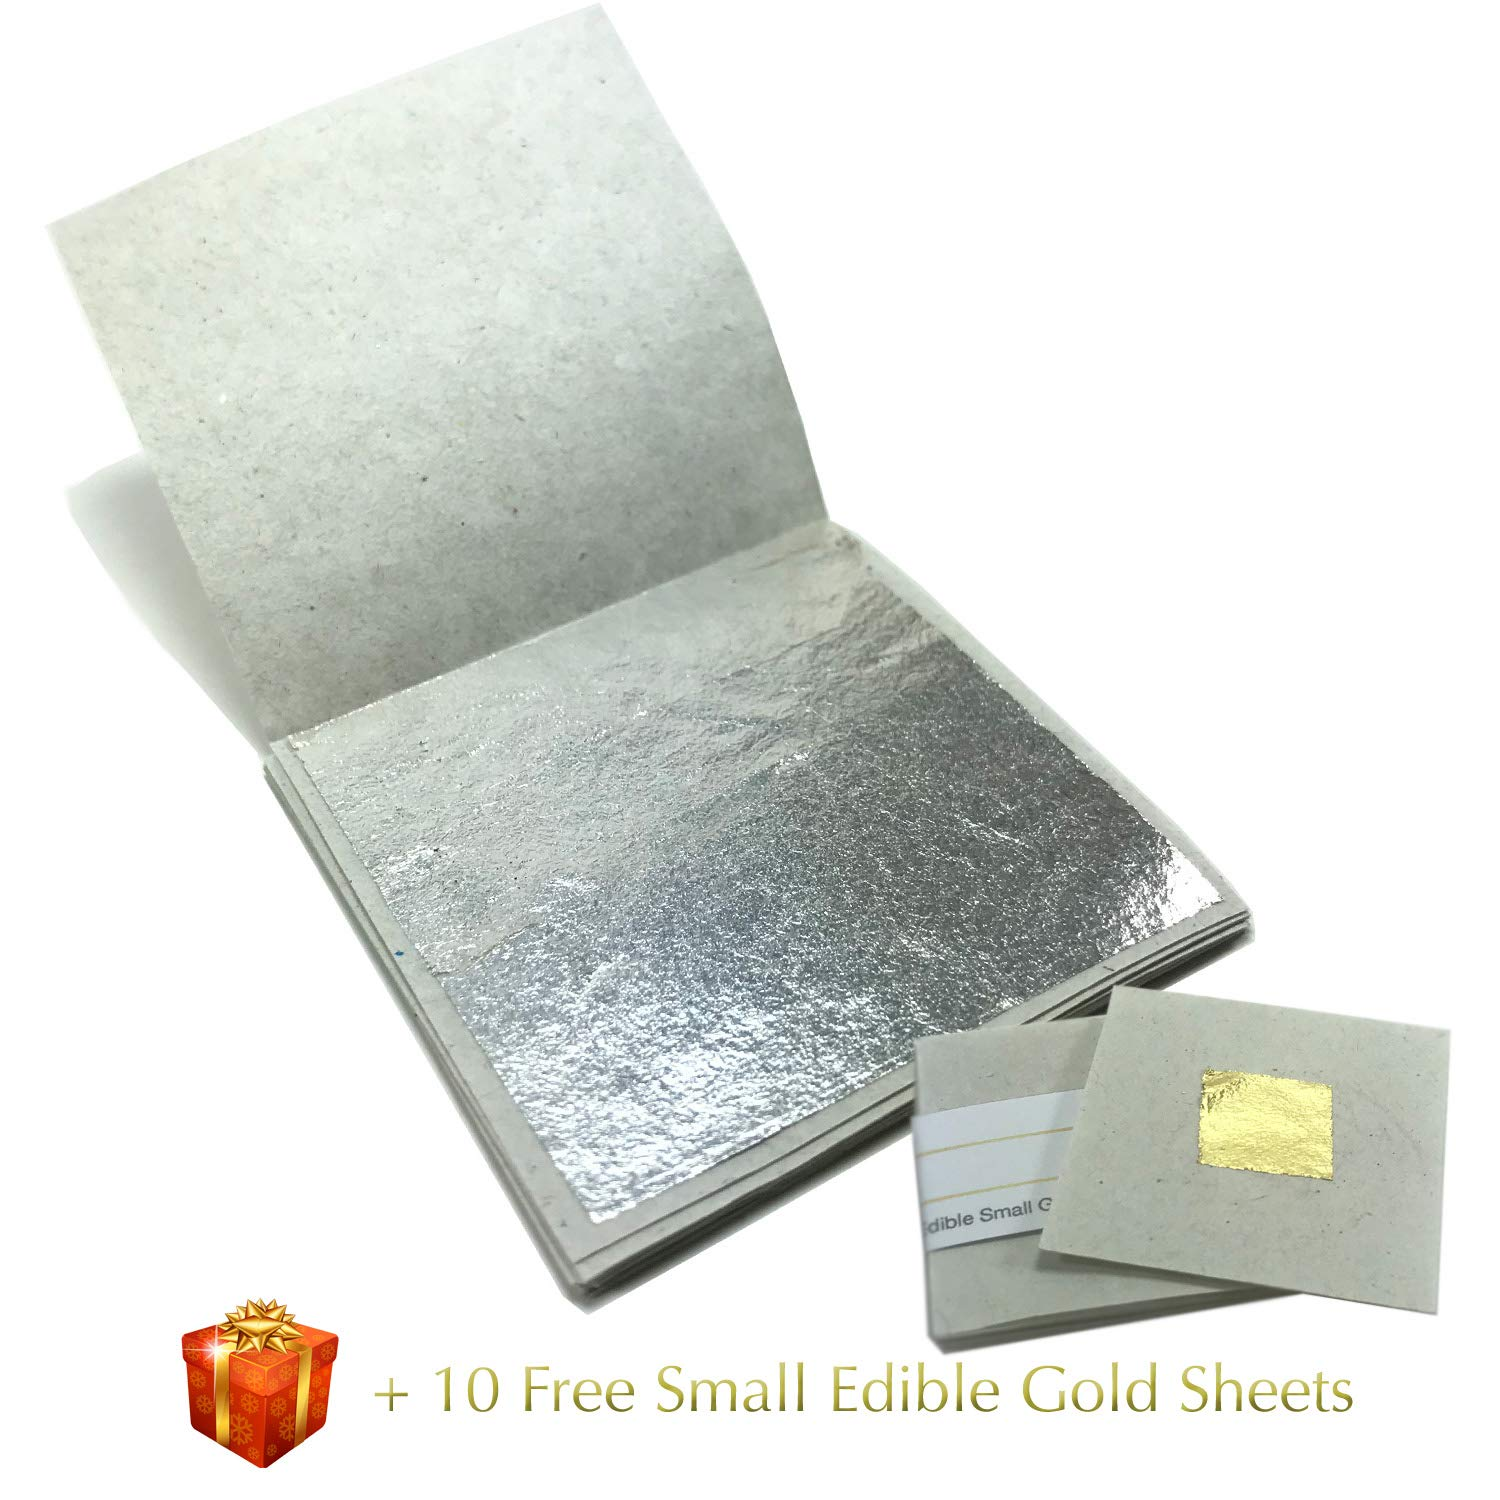 Genuine Edible Silver Leaf Sheets - by Goldleafking 30 Sheets - 2.0 x 2.0 inches for Cooking, Cake & Chocolate, Brownie, Arts, Food Decoration, Gilding, Multi-Purpose + Free Small Gold Leaf x 10